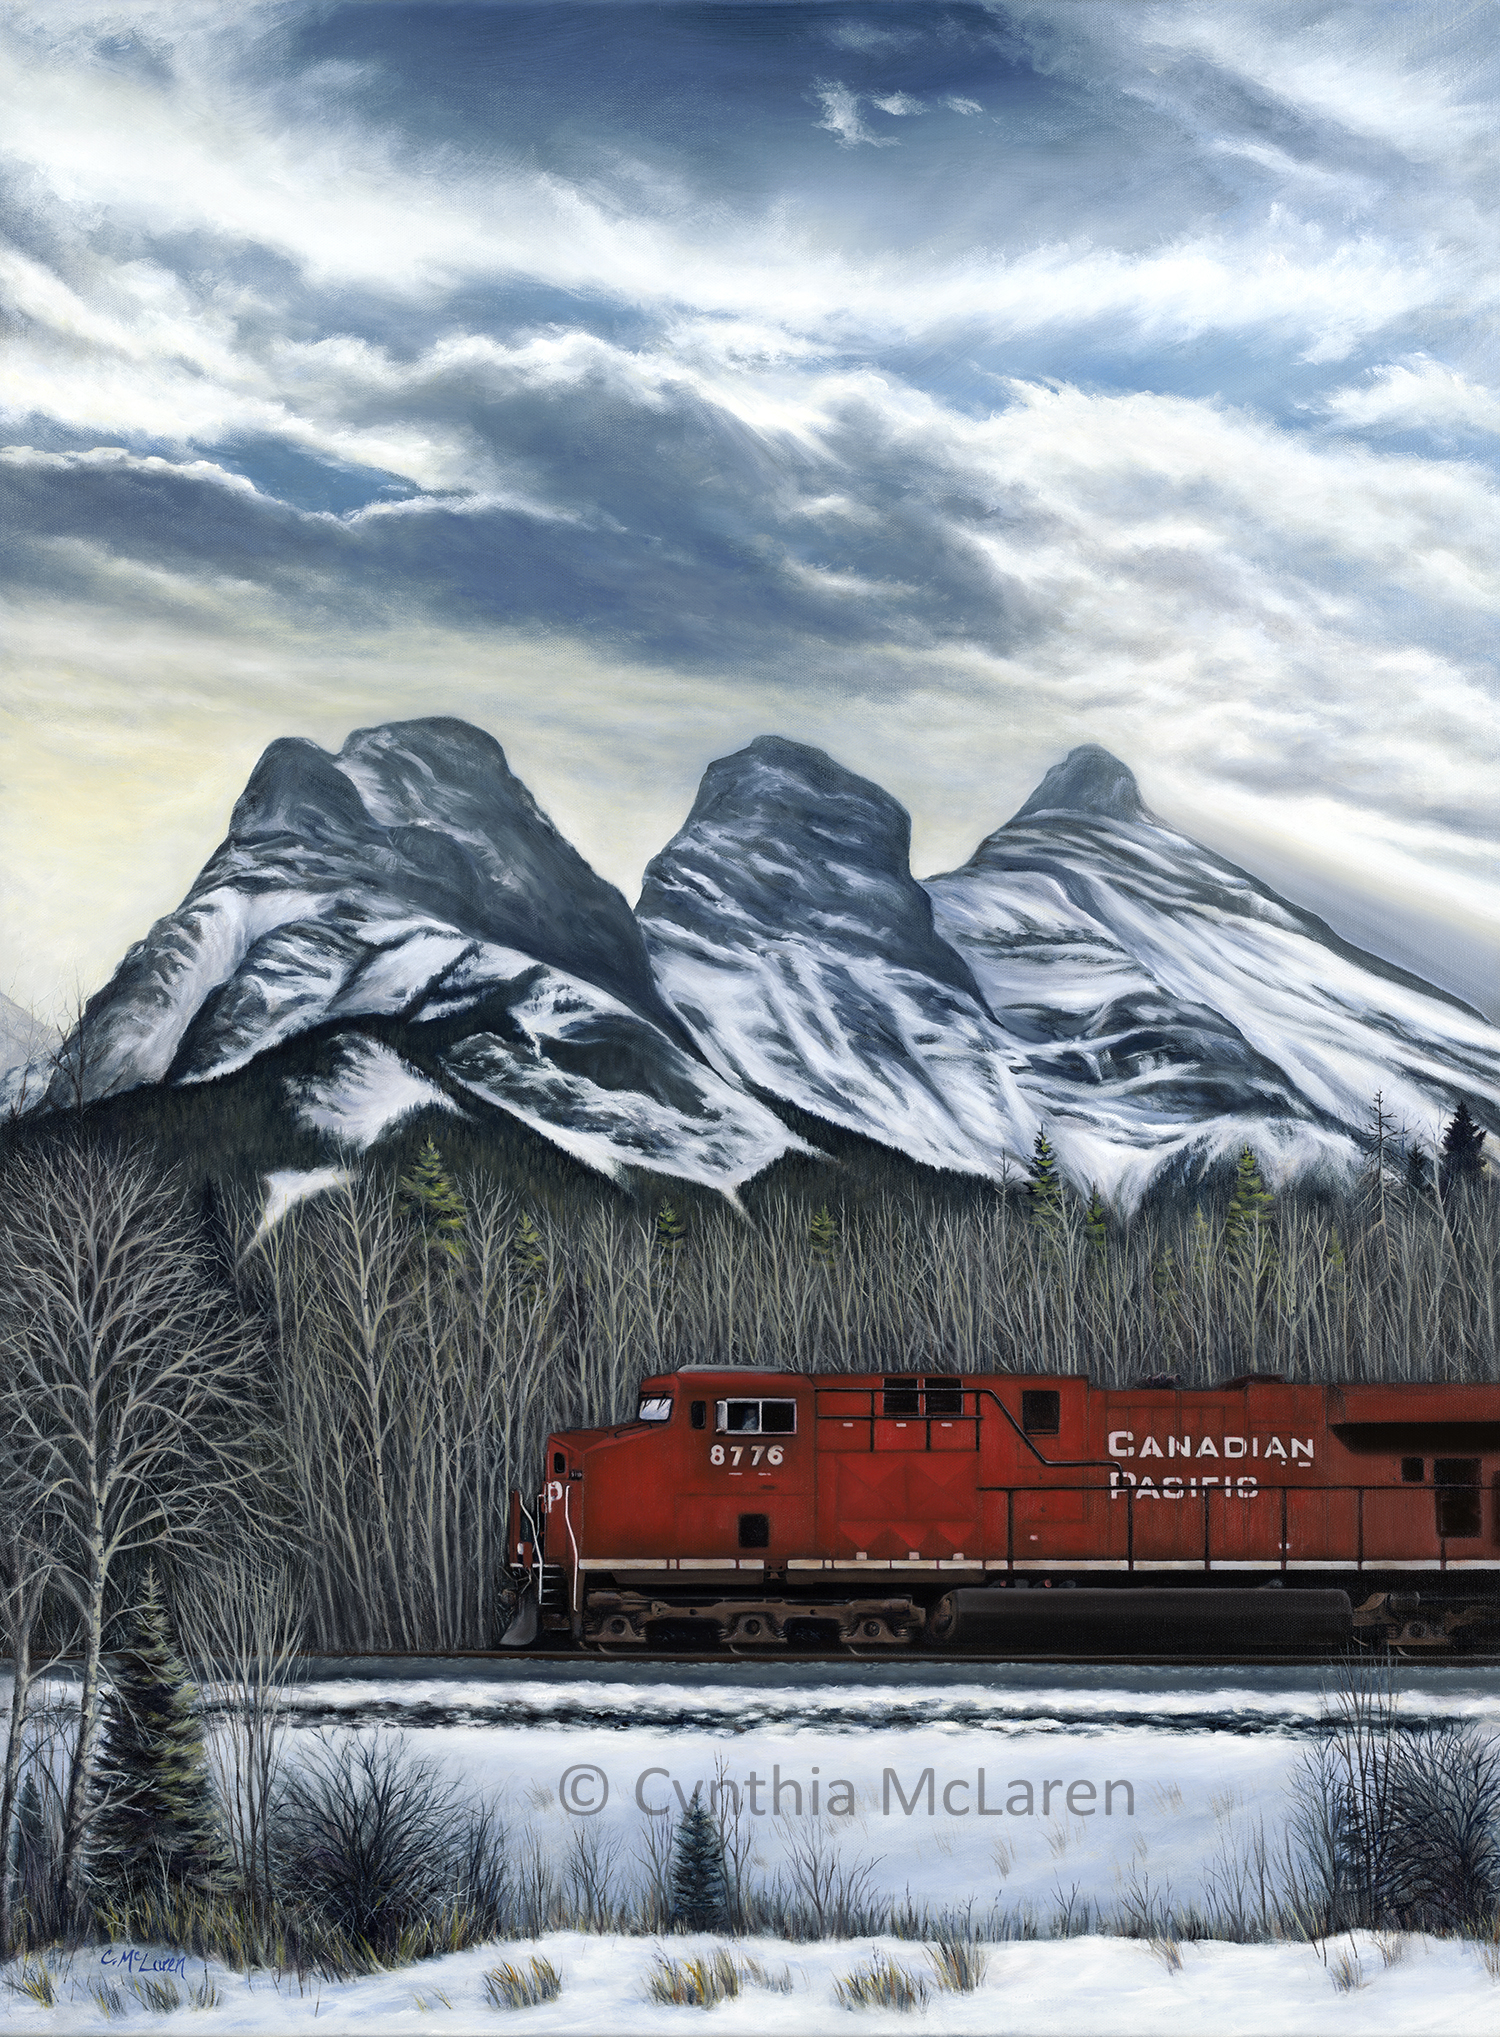 Canadian Pacific Train 8776